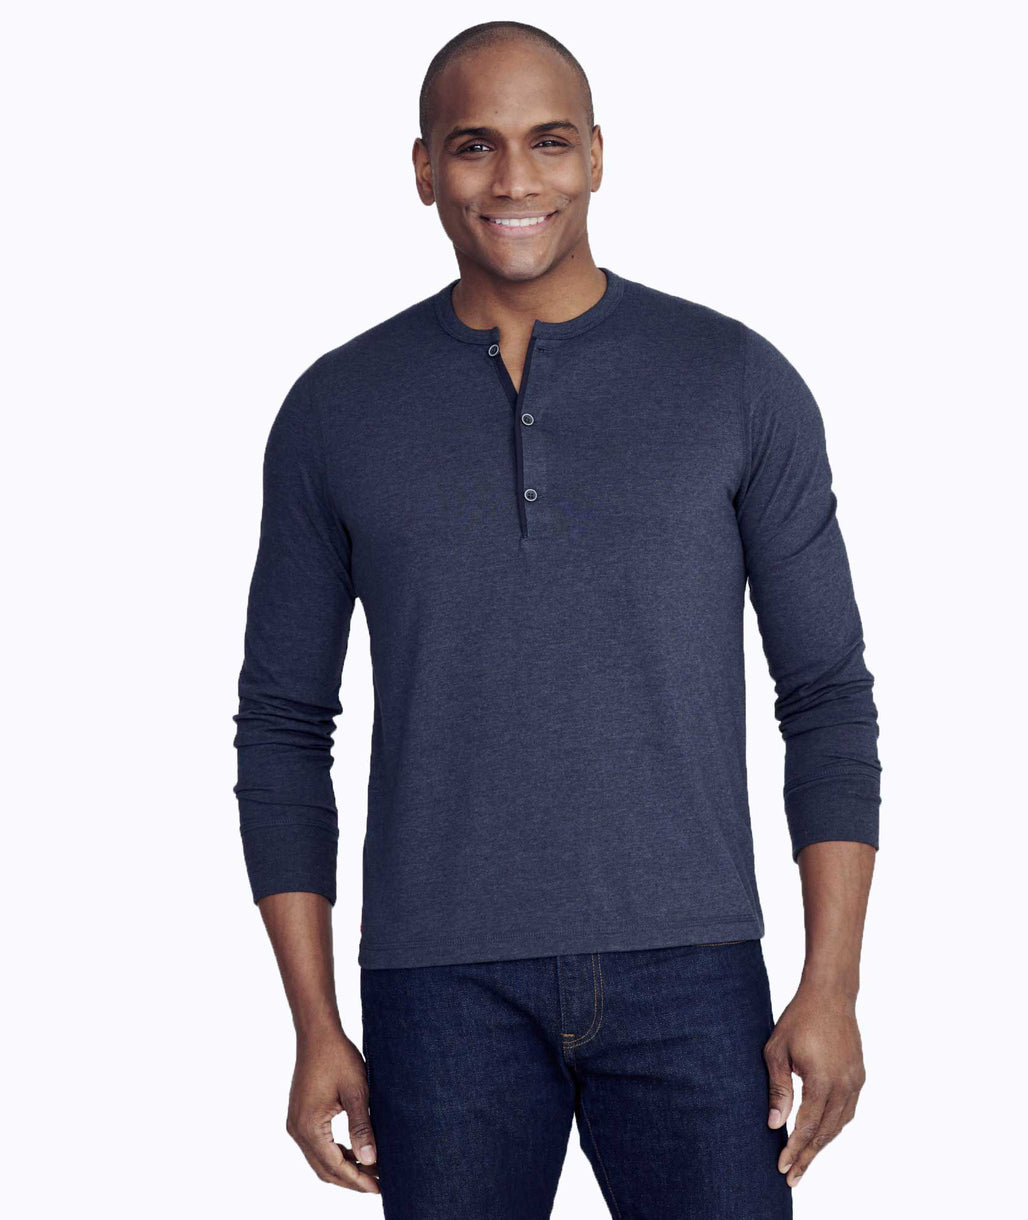 Model wearing a Dark Grey Ultrasoft Long-Sleeve Henley